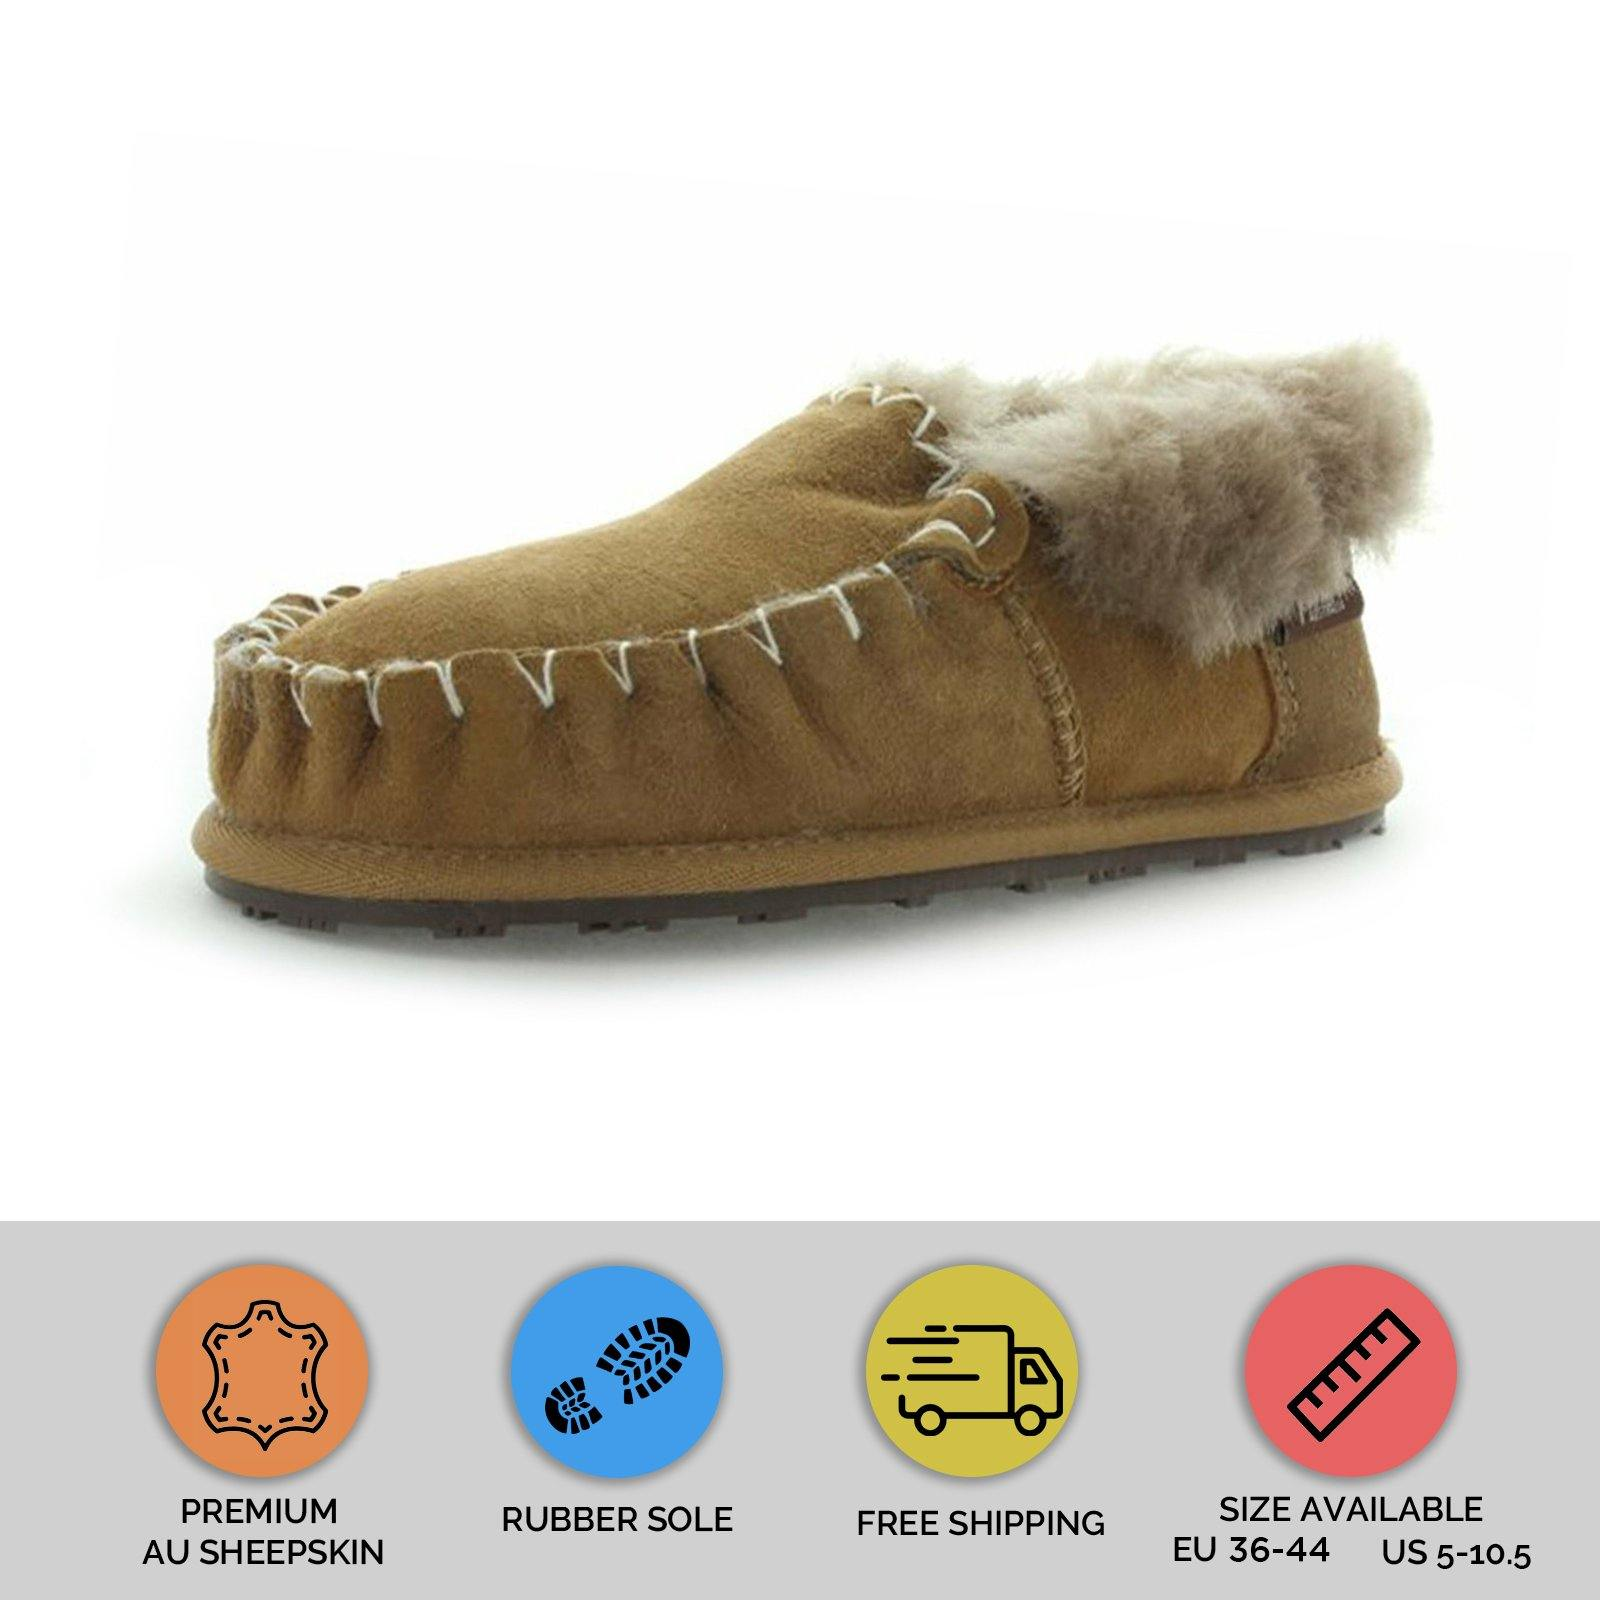 MOCCASIN S by YELLOW EARTH - iShoes - Sale, Women's Shoes, Women's Shoes: Slippers - FOOTWEAR-FOOTWEAR